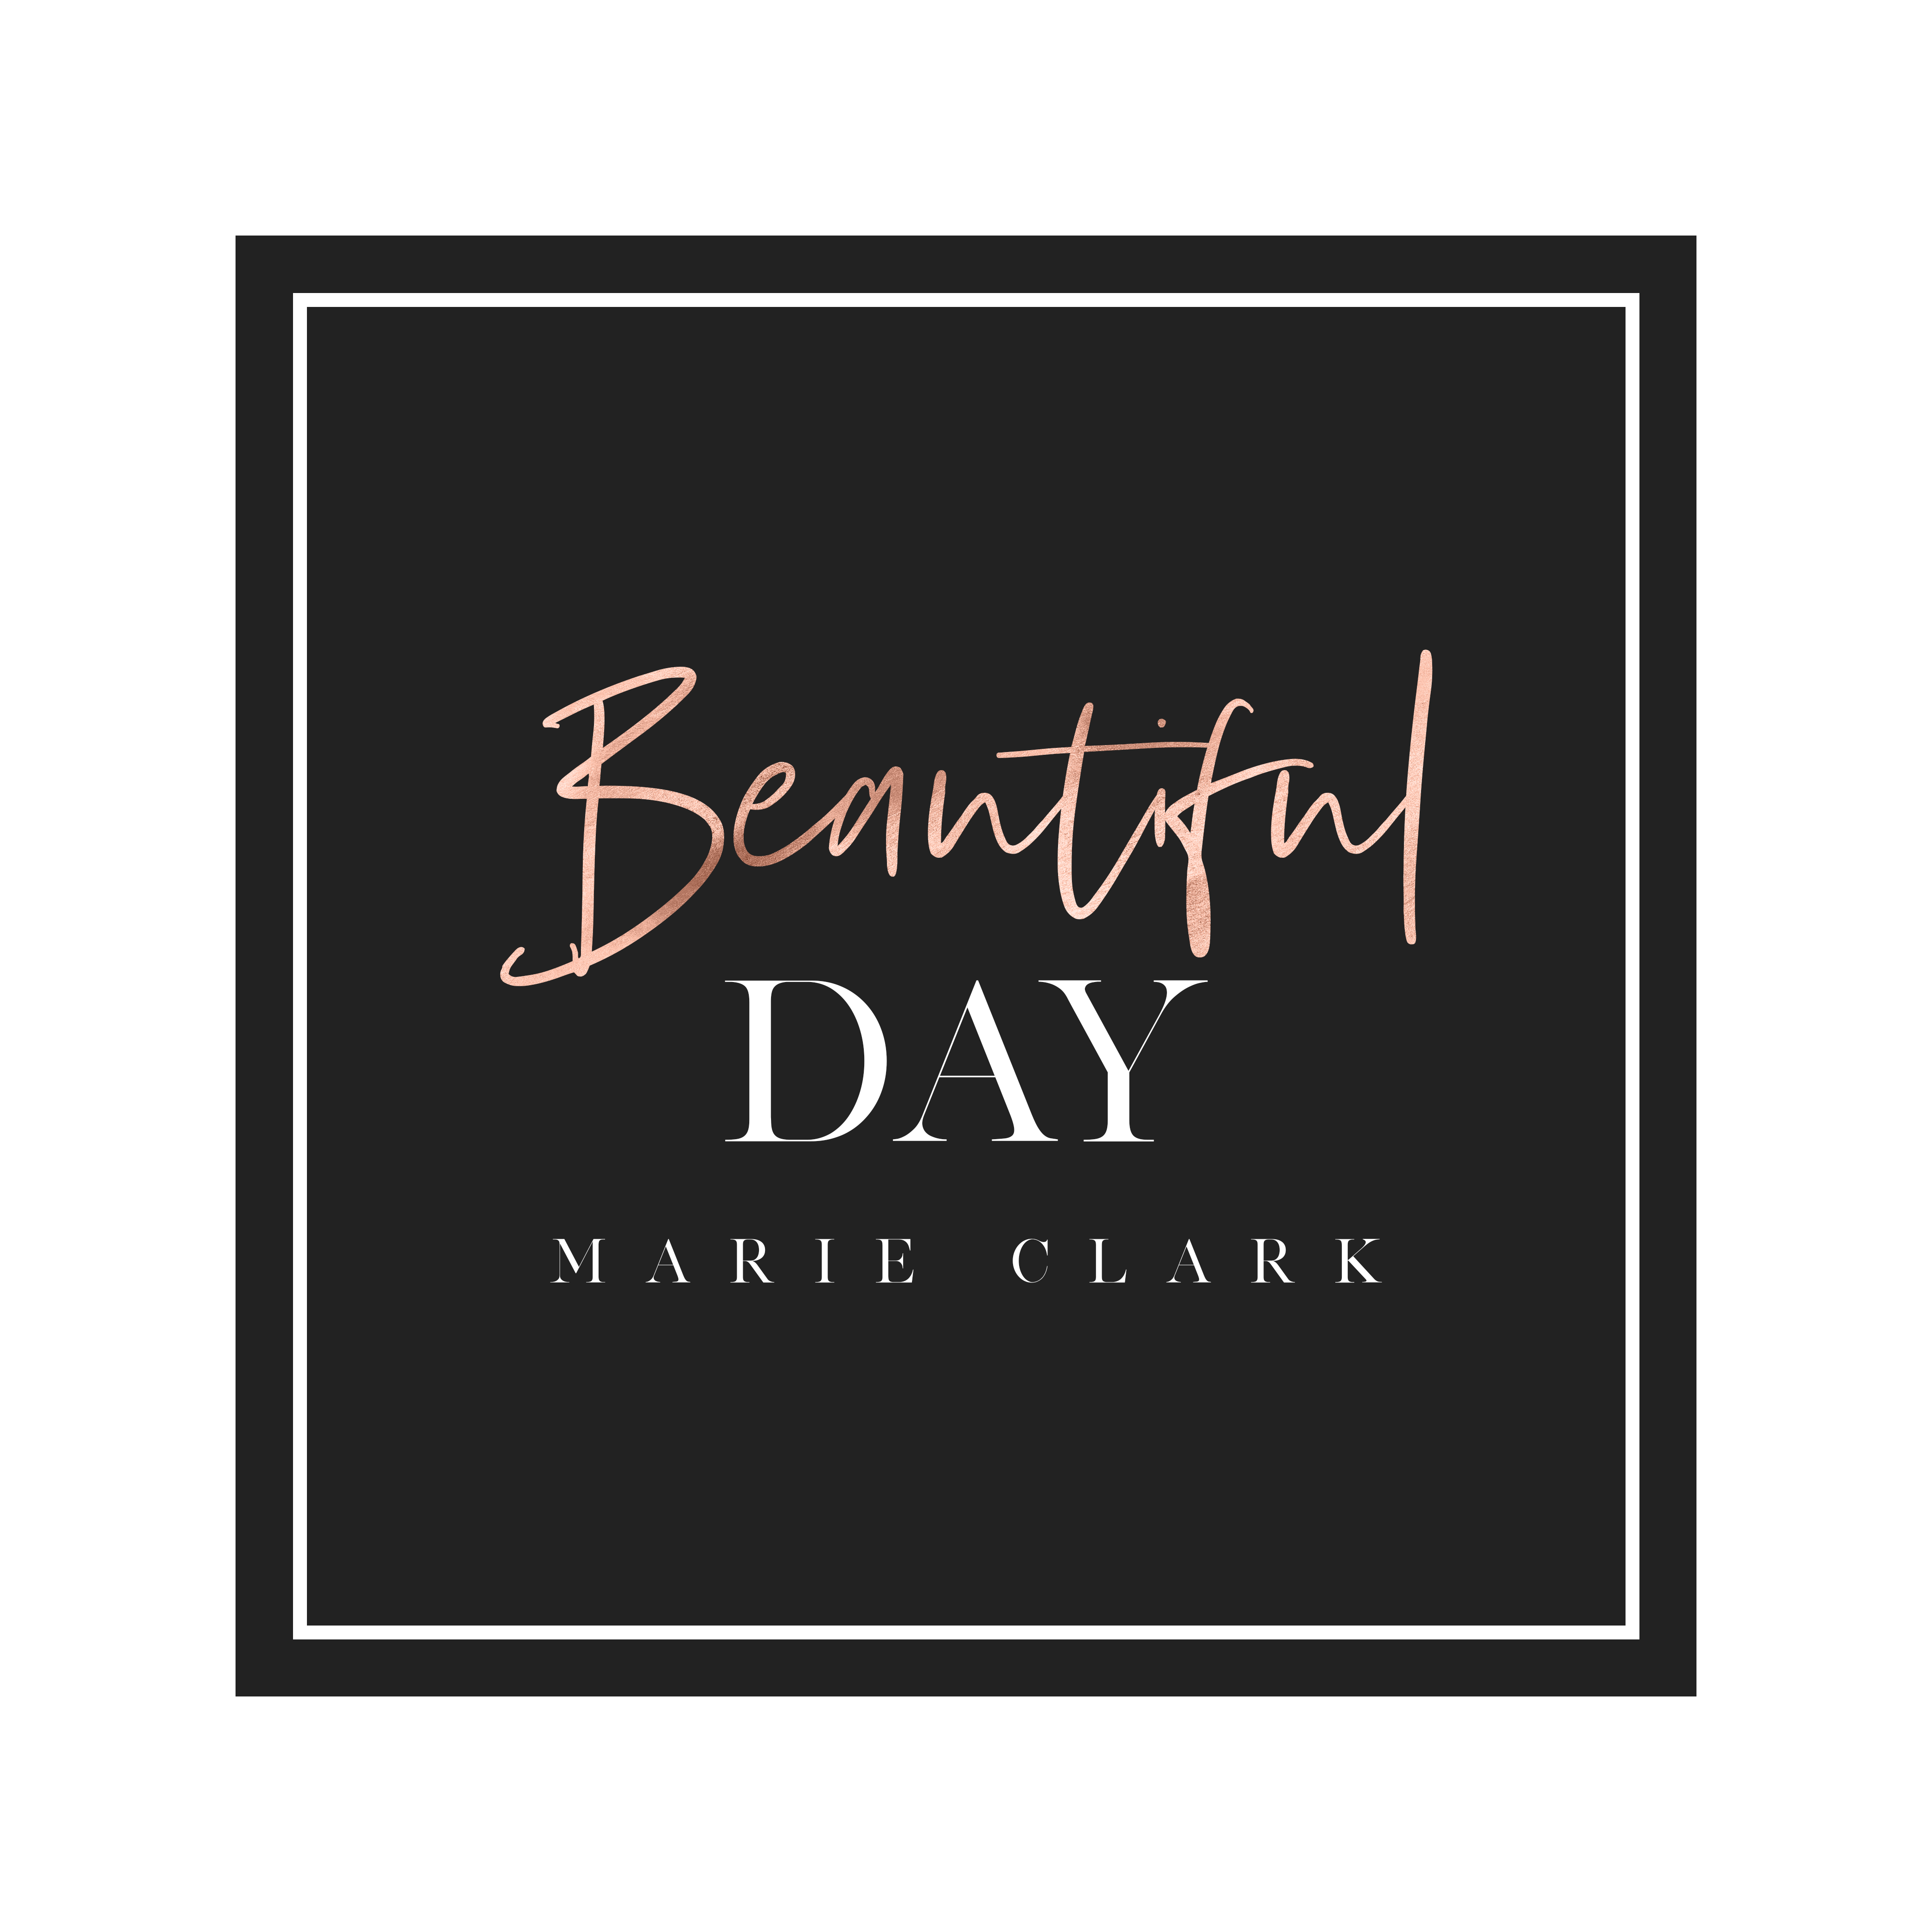 Marie Clark Beautifuldayblog.com Los Angeles based motherhood, travel and lifestyle blogger